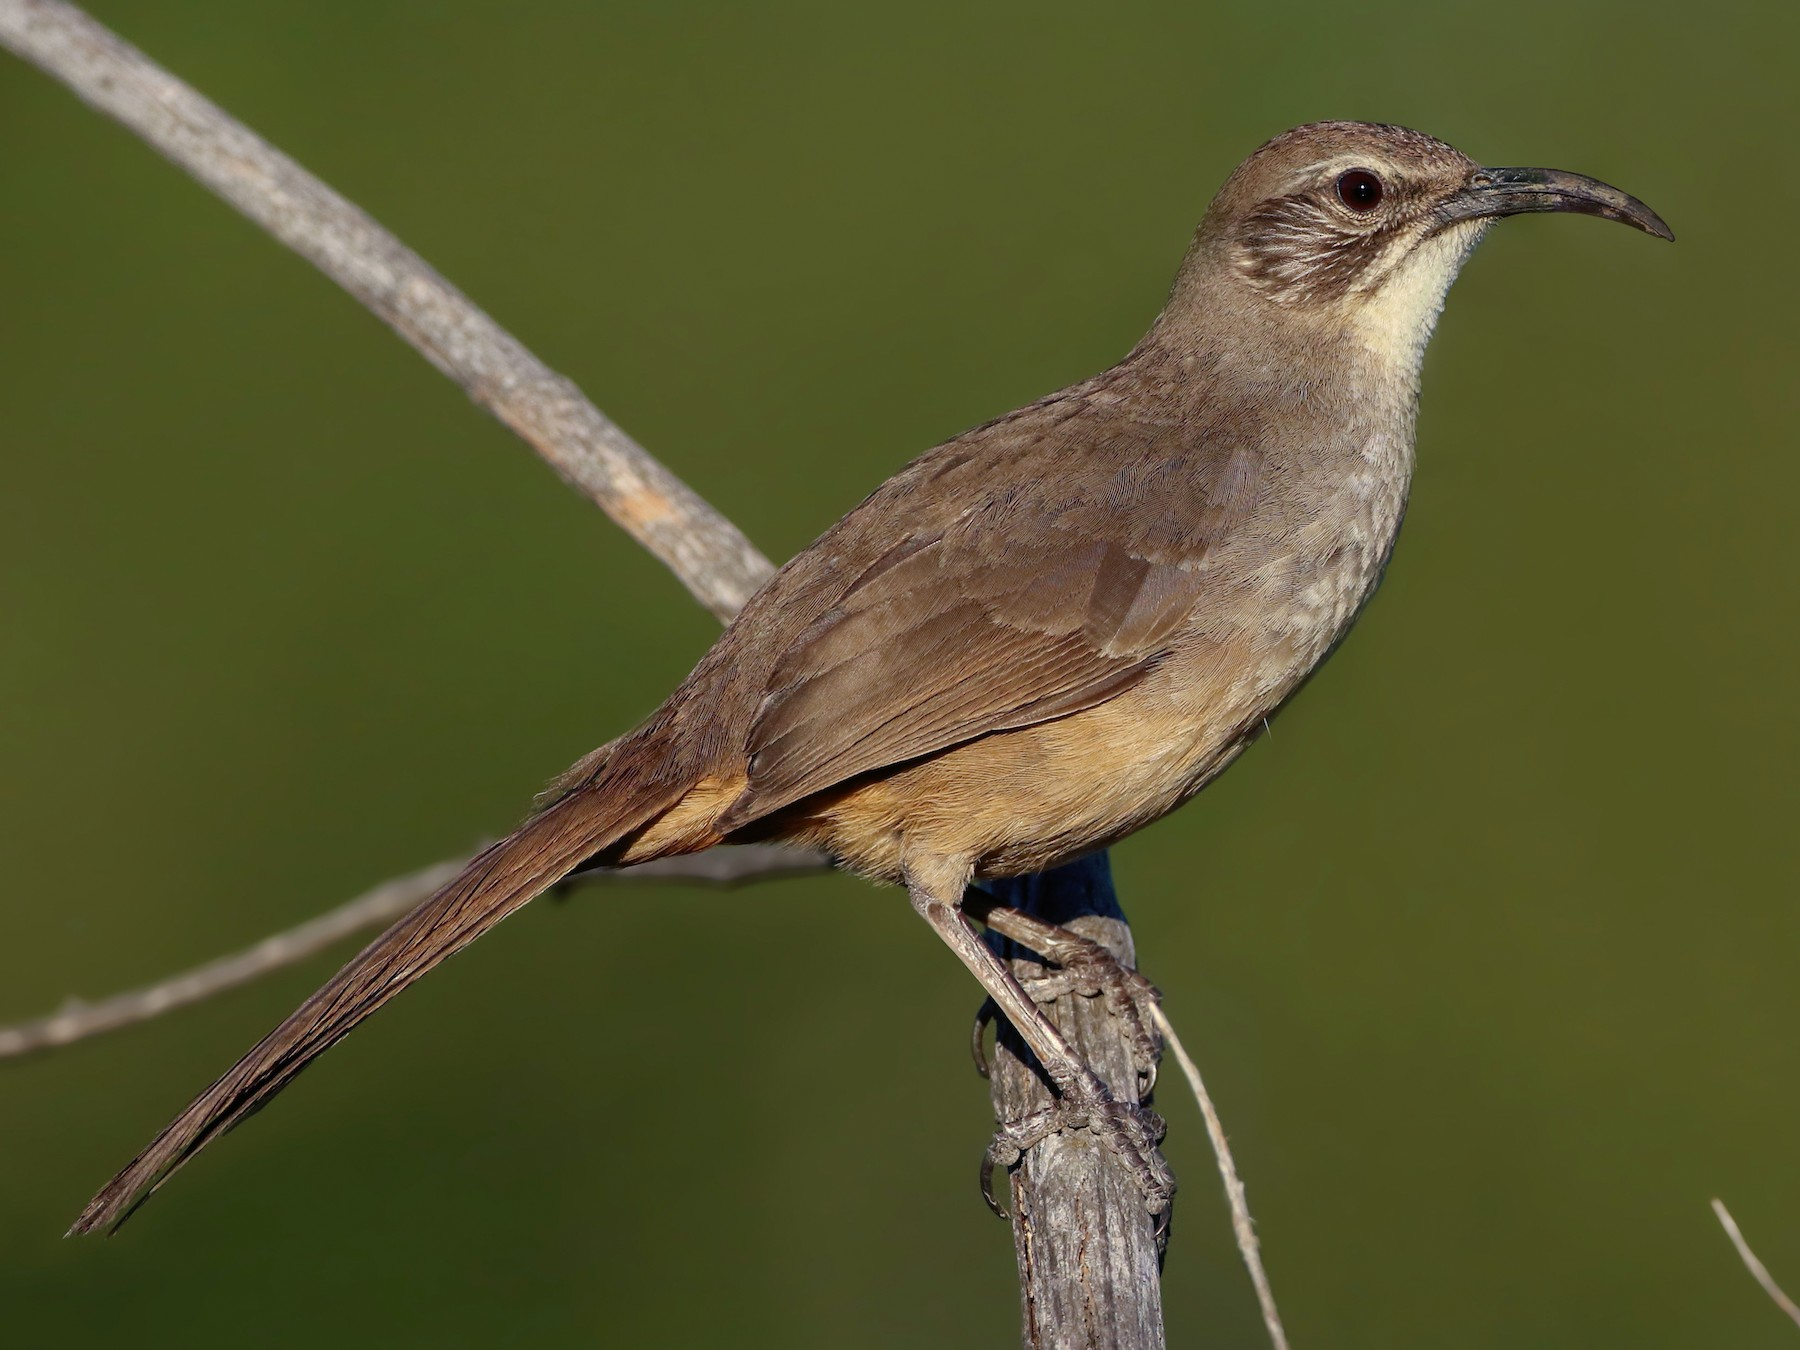 California Thrasher - Luke Seitz